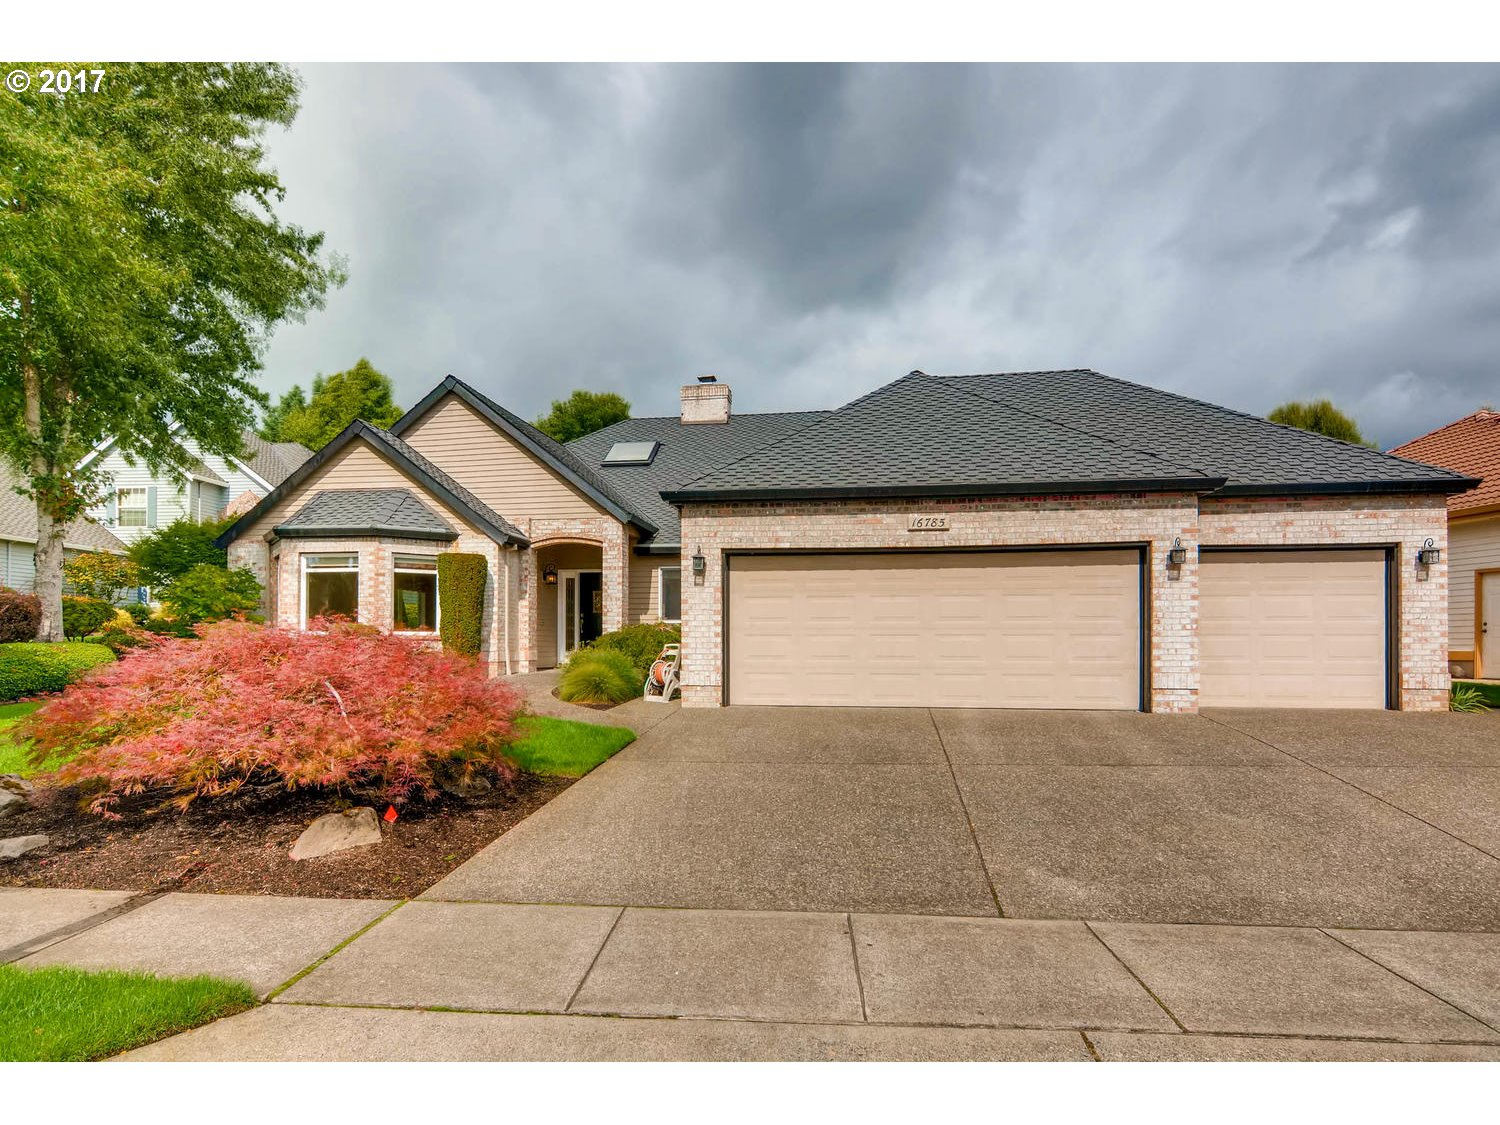 Open House Saturday 9/23 11am to 1pm.One Level, One Owner, this home is impeccable and move in ready.  Hardwood floors, large spacious kitchen opens to family room, gas range, gas f/p, master suite with newly remodeled bathroom, 3 car finished garage, built in vac system.  On cul-d-sac, beautifully landscaped yard.